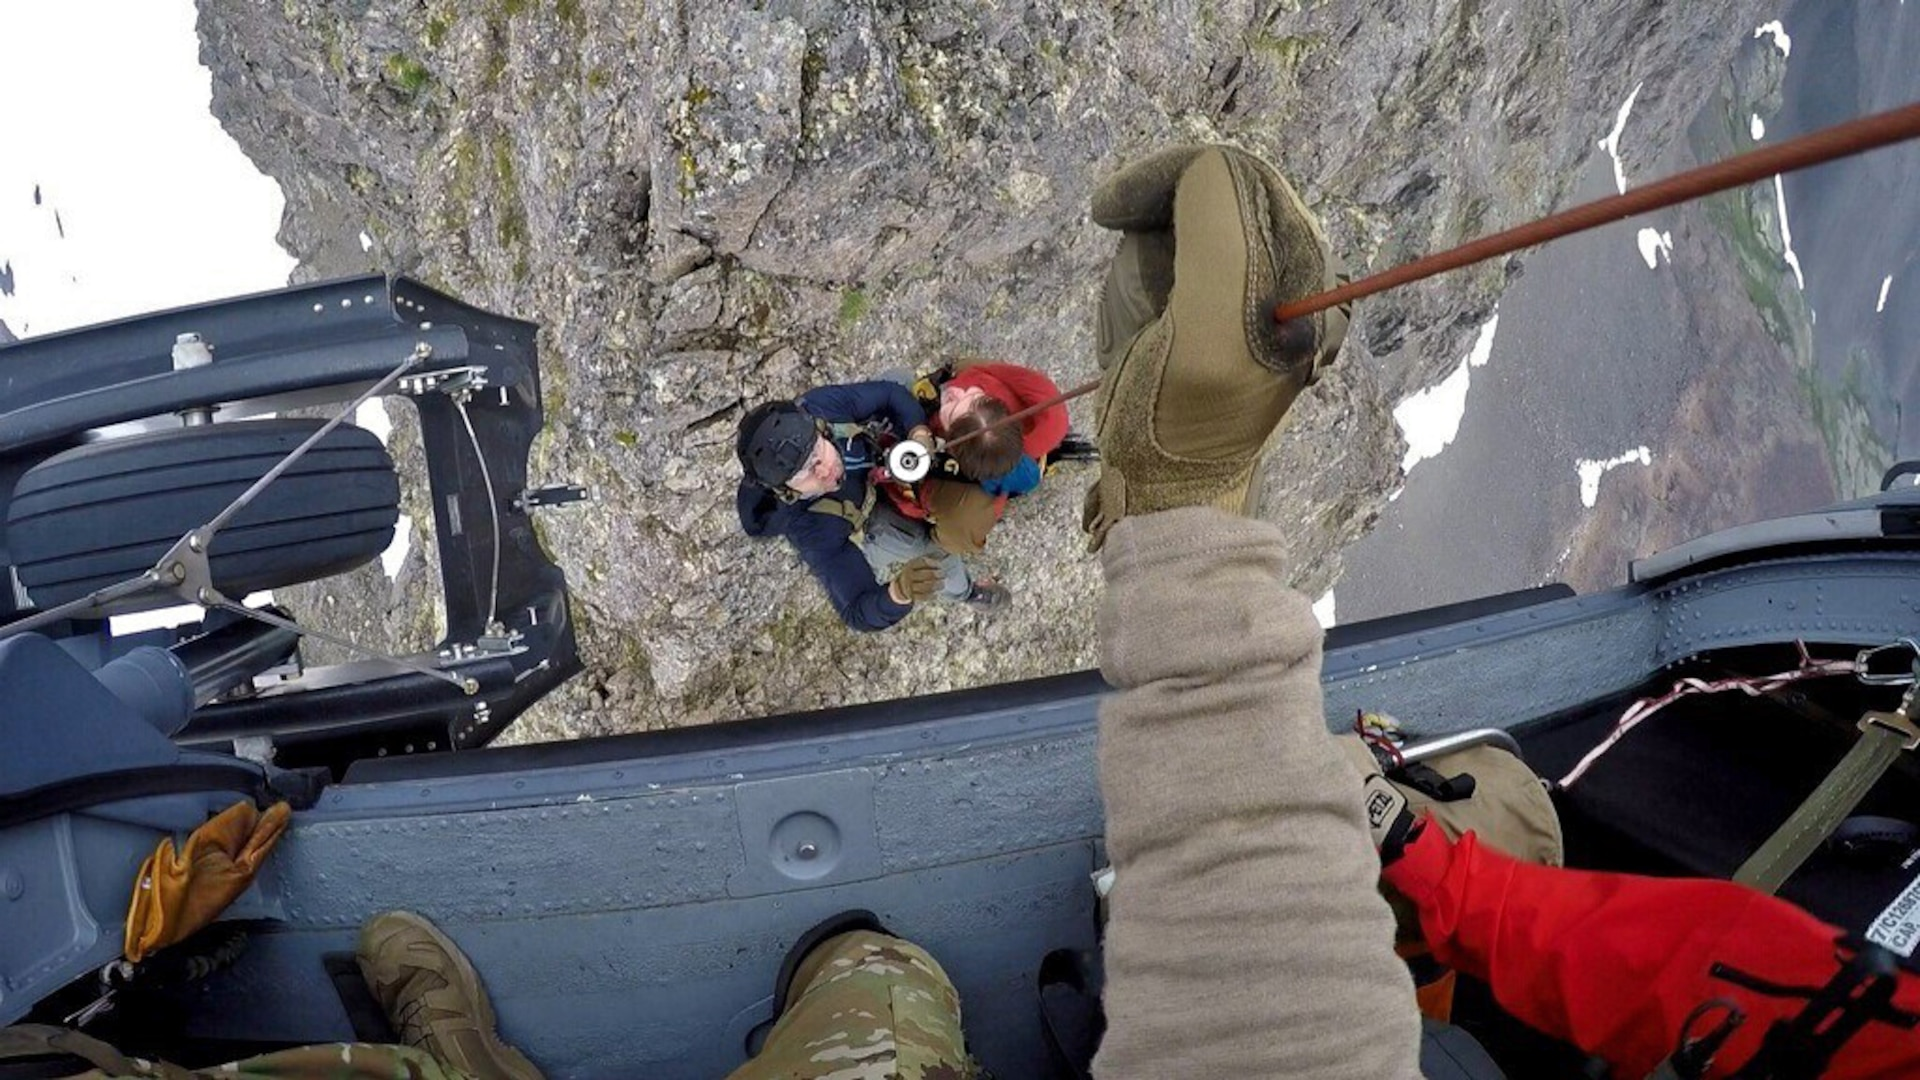 An Alaska Air National Guard HH-60G Pave Hawk helicopter and aircrew assigned to the 210th Rescue Squadron and pararescuemen from the 212th Rescue Squadron saved a distressed hiker on July 26, 2020, at Mount Williwaw east of Anchorage.